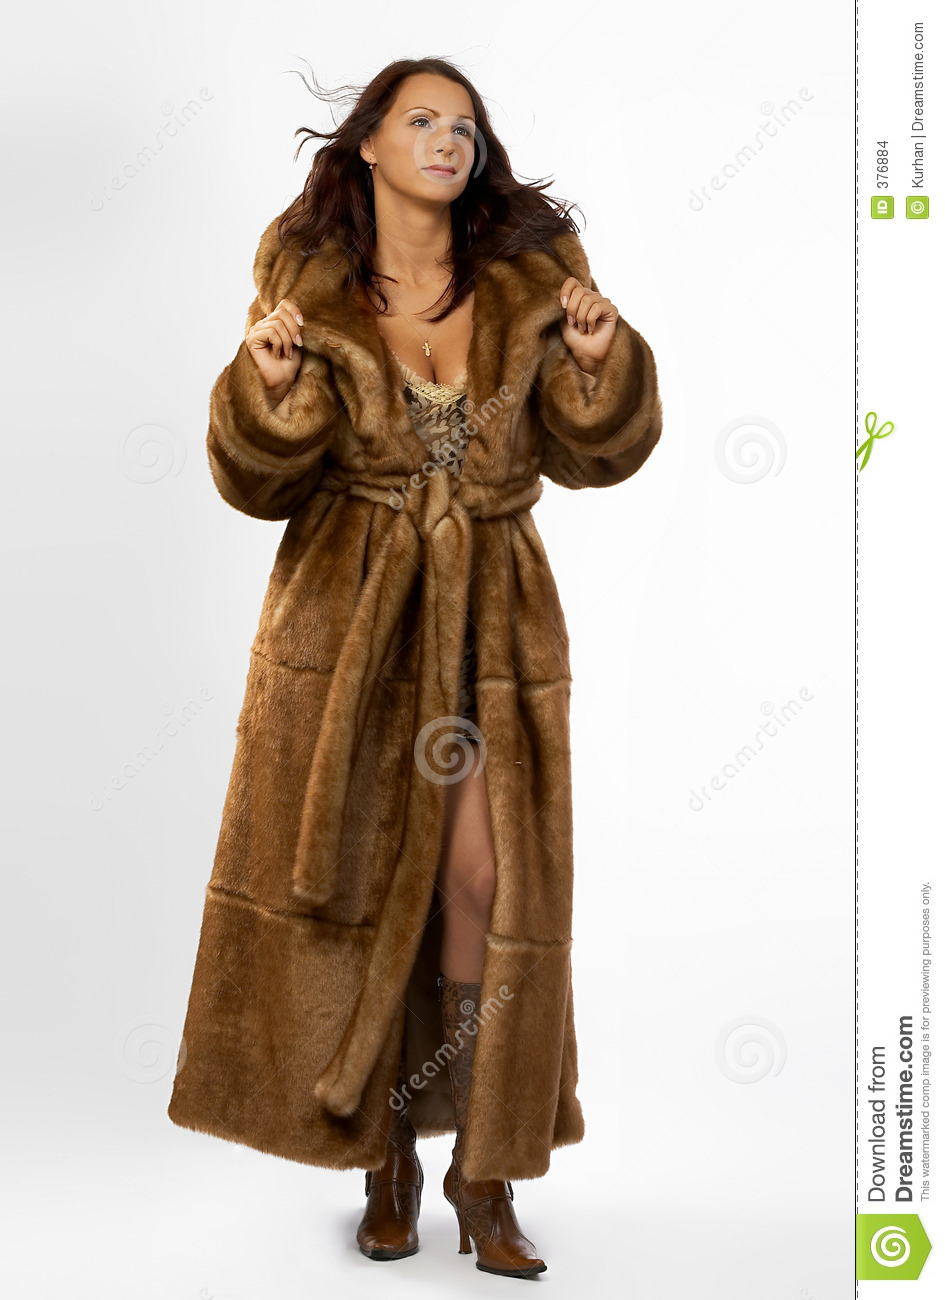 Beautiful Young Woman In A Fur Coat. Stock Images - Image: 376884